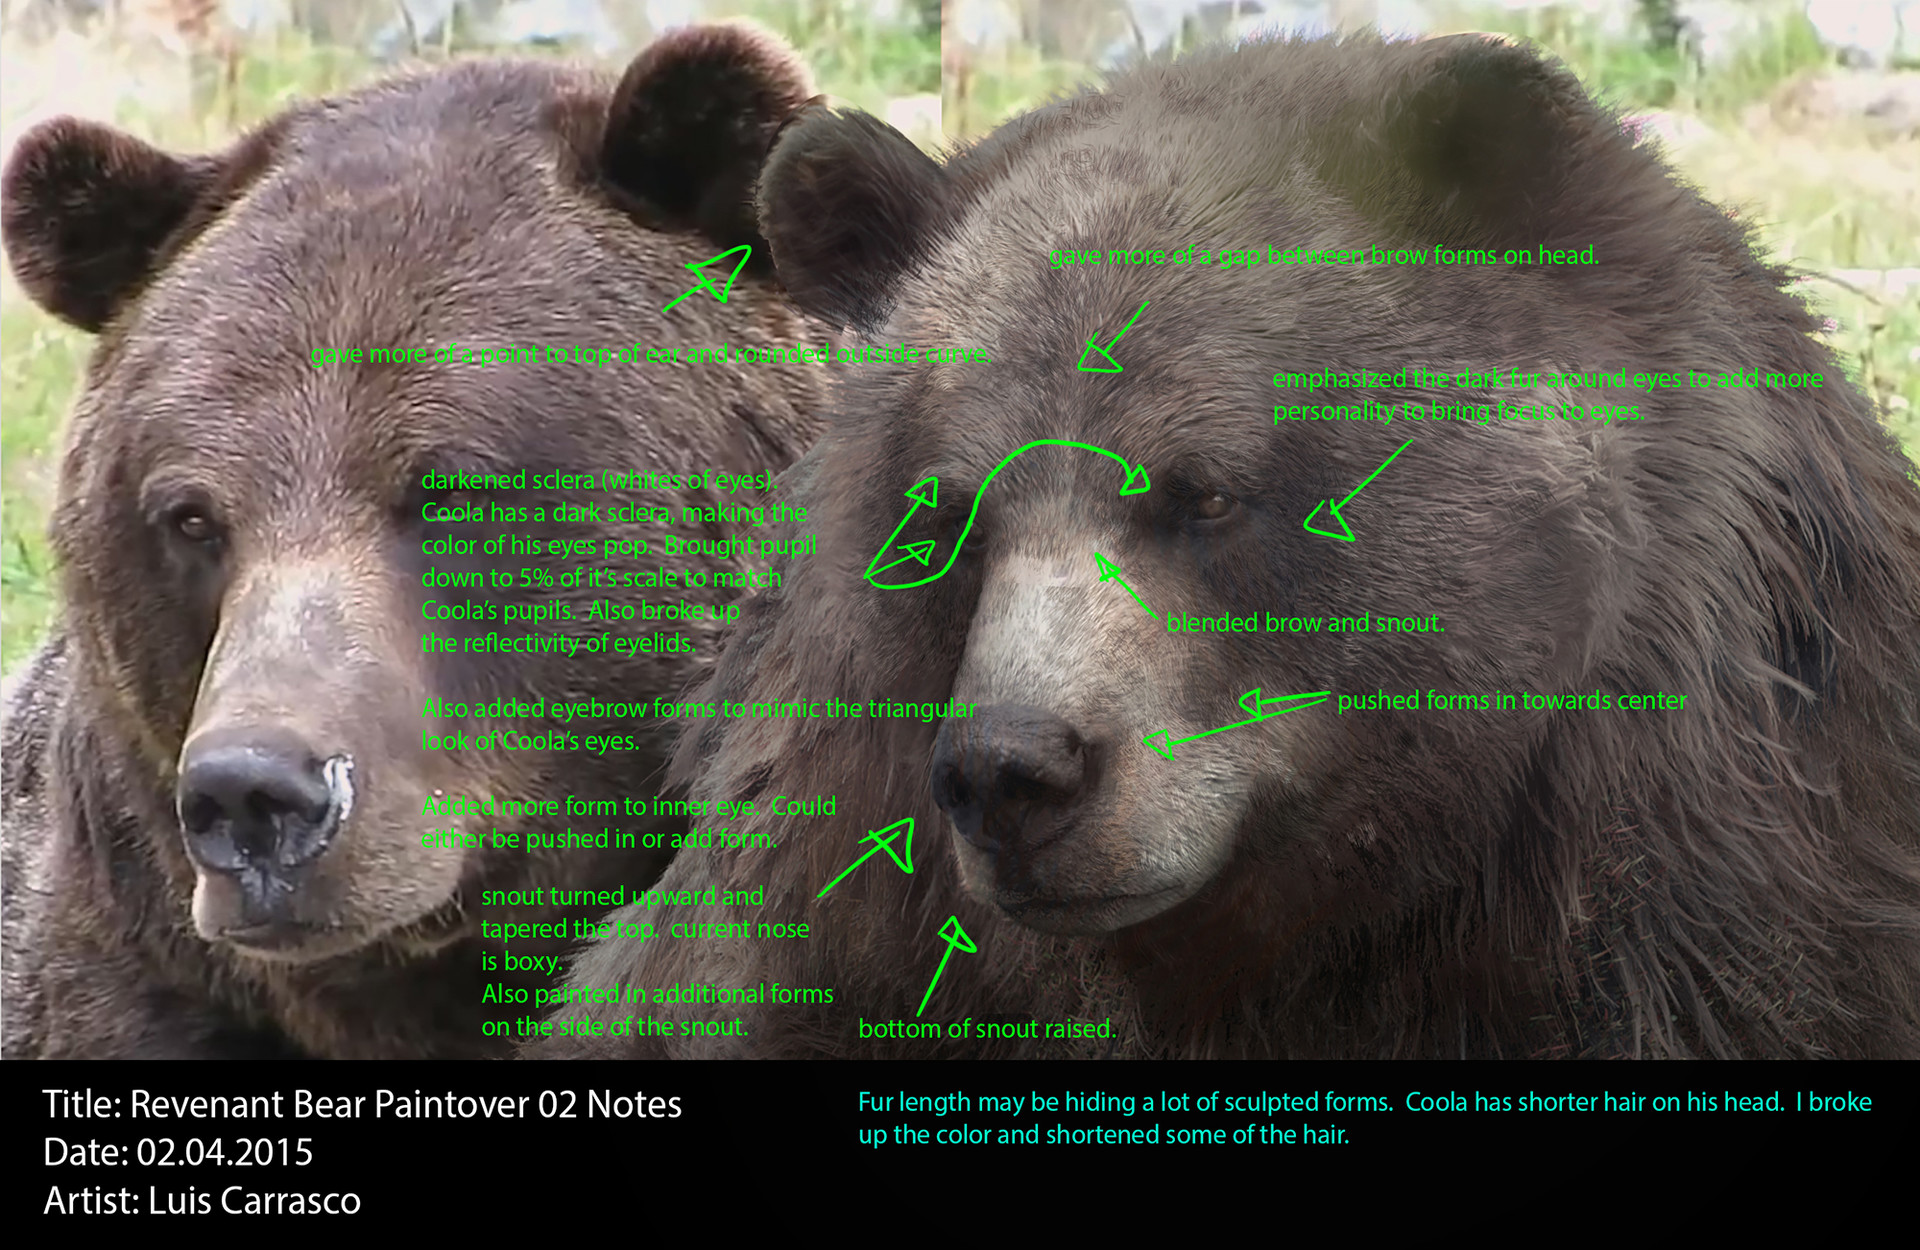 Luis carrasco rvt bear paintover 02 lc notes